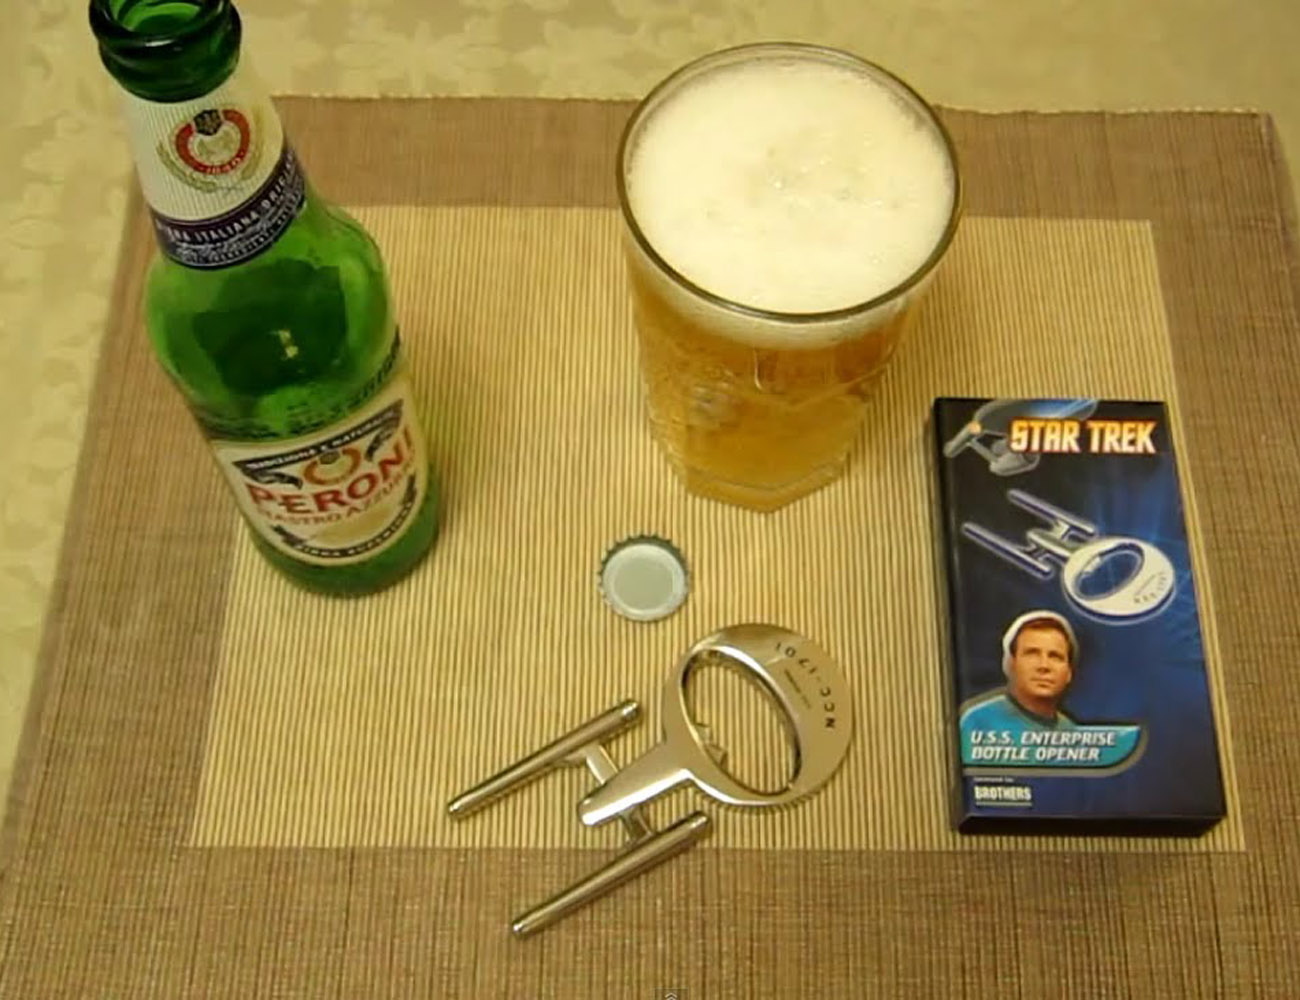 Star+Trek+Enterprise+Bottle+Opener